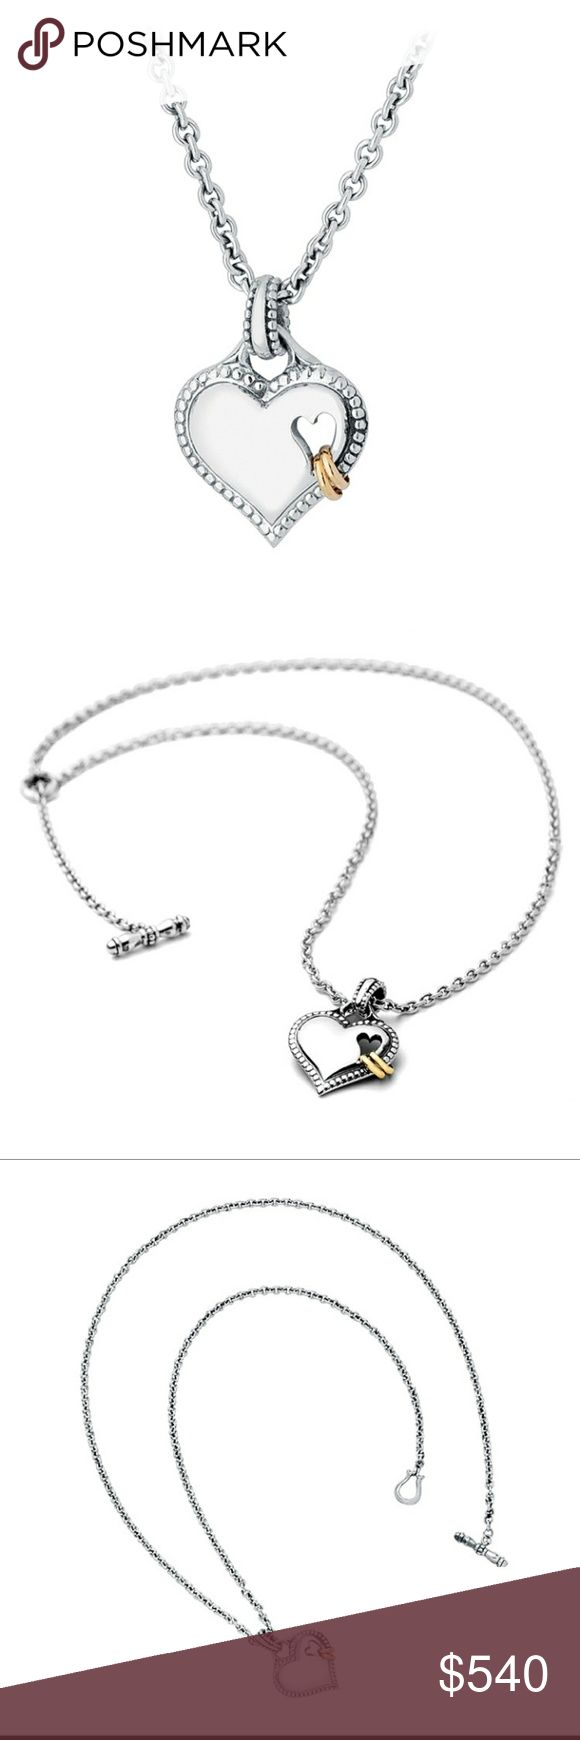 """Authentic Scott Kay Eternity Heart Necklace *Open to offers*  Scott Kay Heart and Rings Necklace. For lovers the world over comes this exclusive piece. Two 14K gold symbolic """"Eternity"""" rings loop through a medium sterling silver heart bordered in a beaded design. Petite anchor chain and toggle clasp. 18"""". Scott Kay Jewelry Necklaces"""